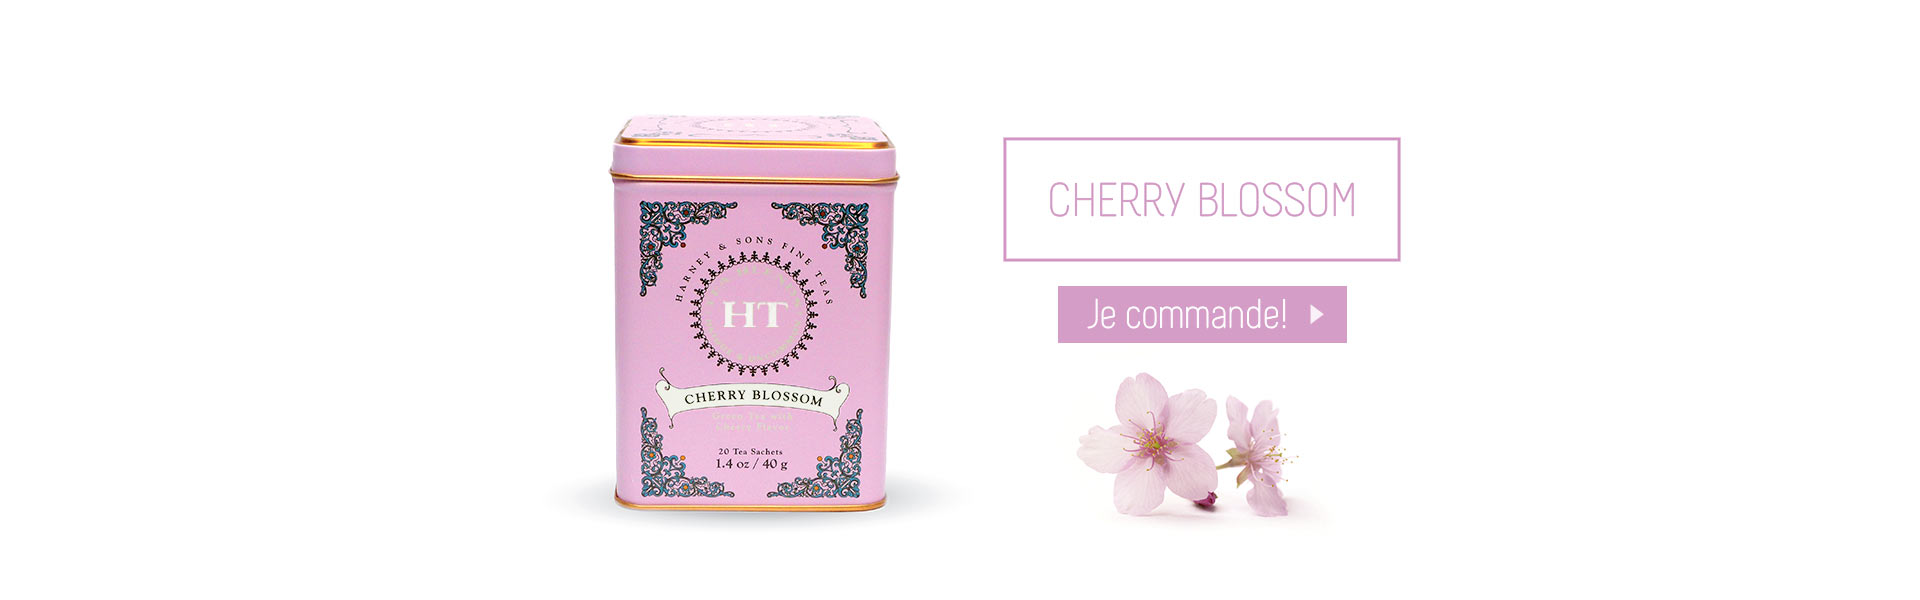 Acheter Harney and Sons Cherry Blossom thé